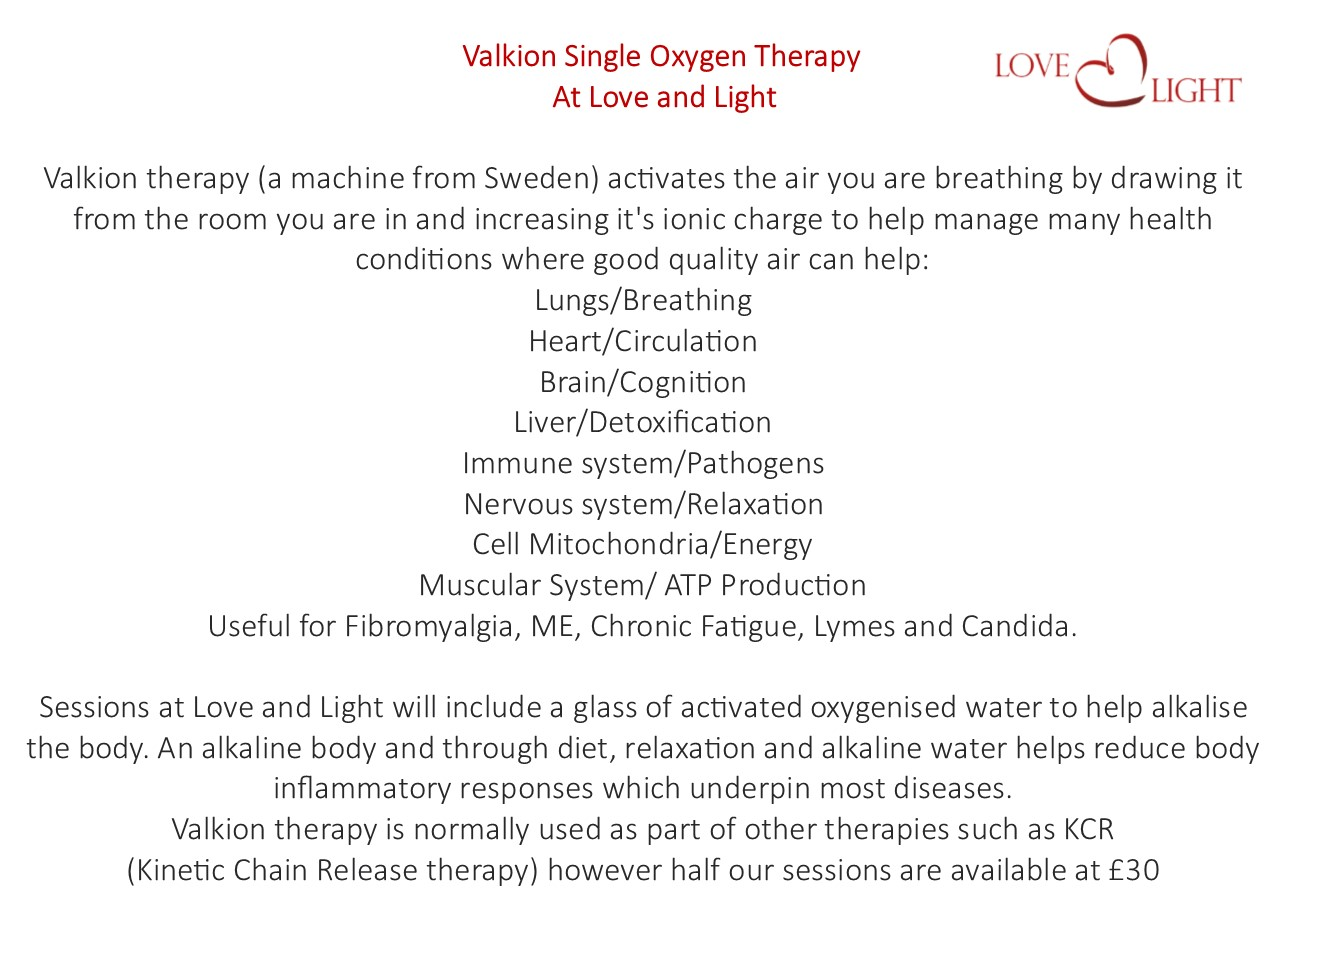 mark valk oxygen therapy